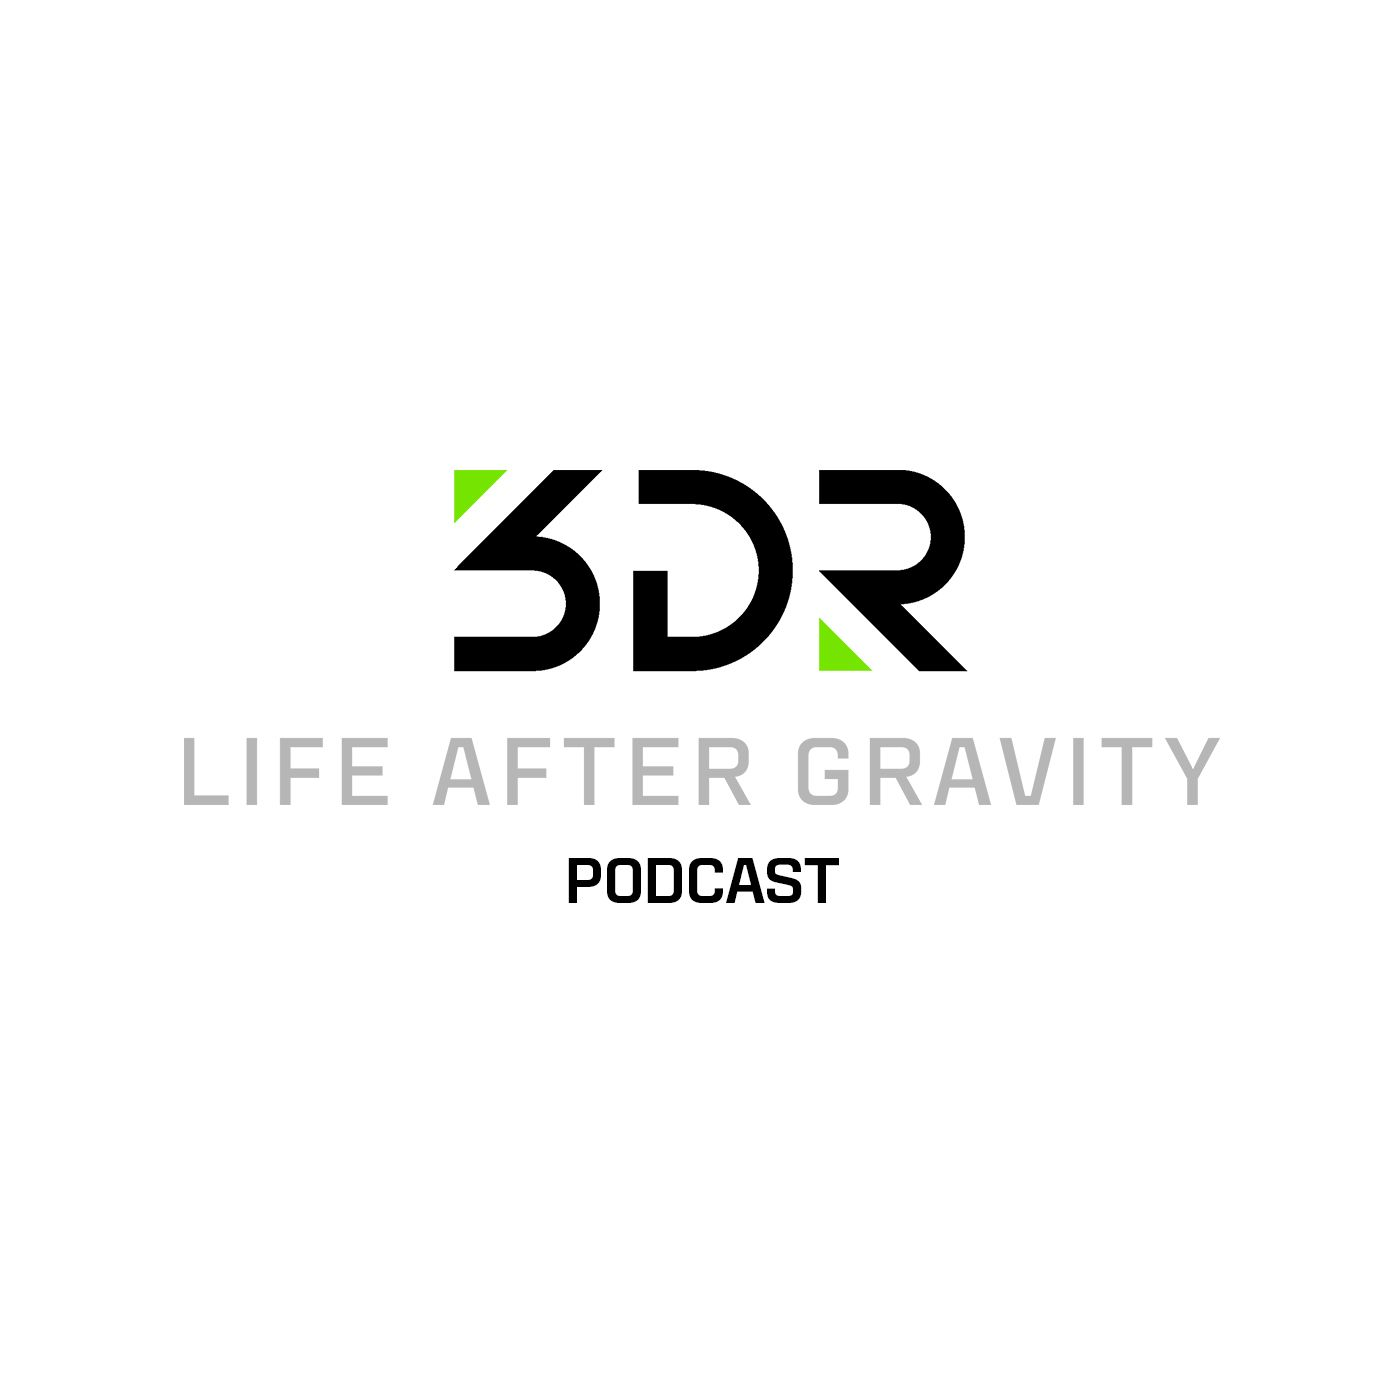 3DR Life After Gravity Podcast